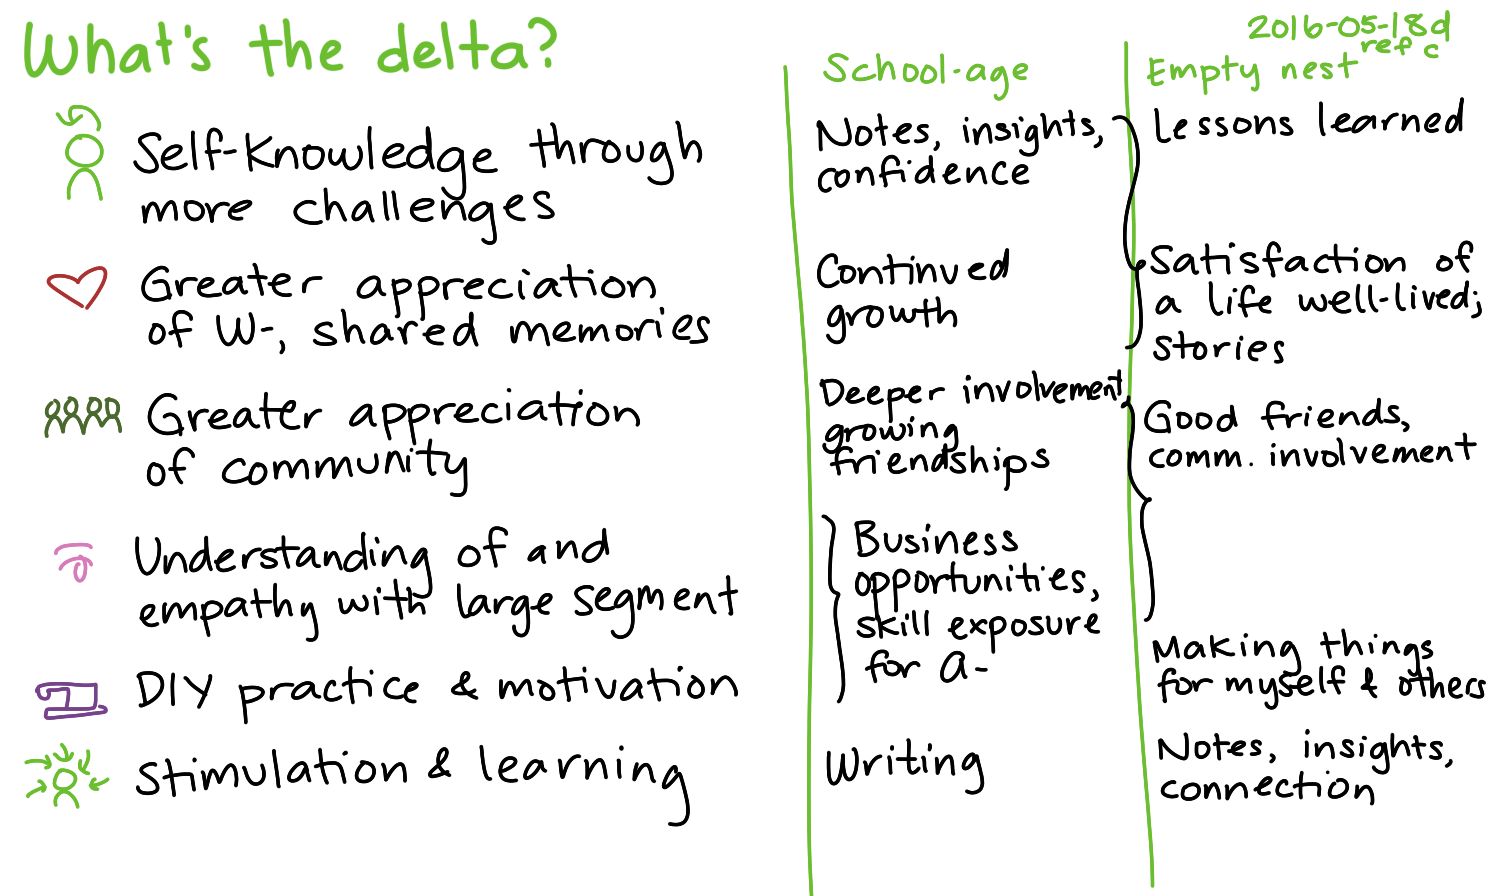 2016-05-18d What's the delta -- index card #identity #parenting.png